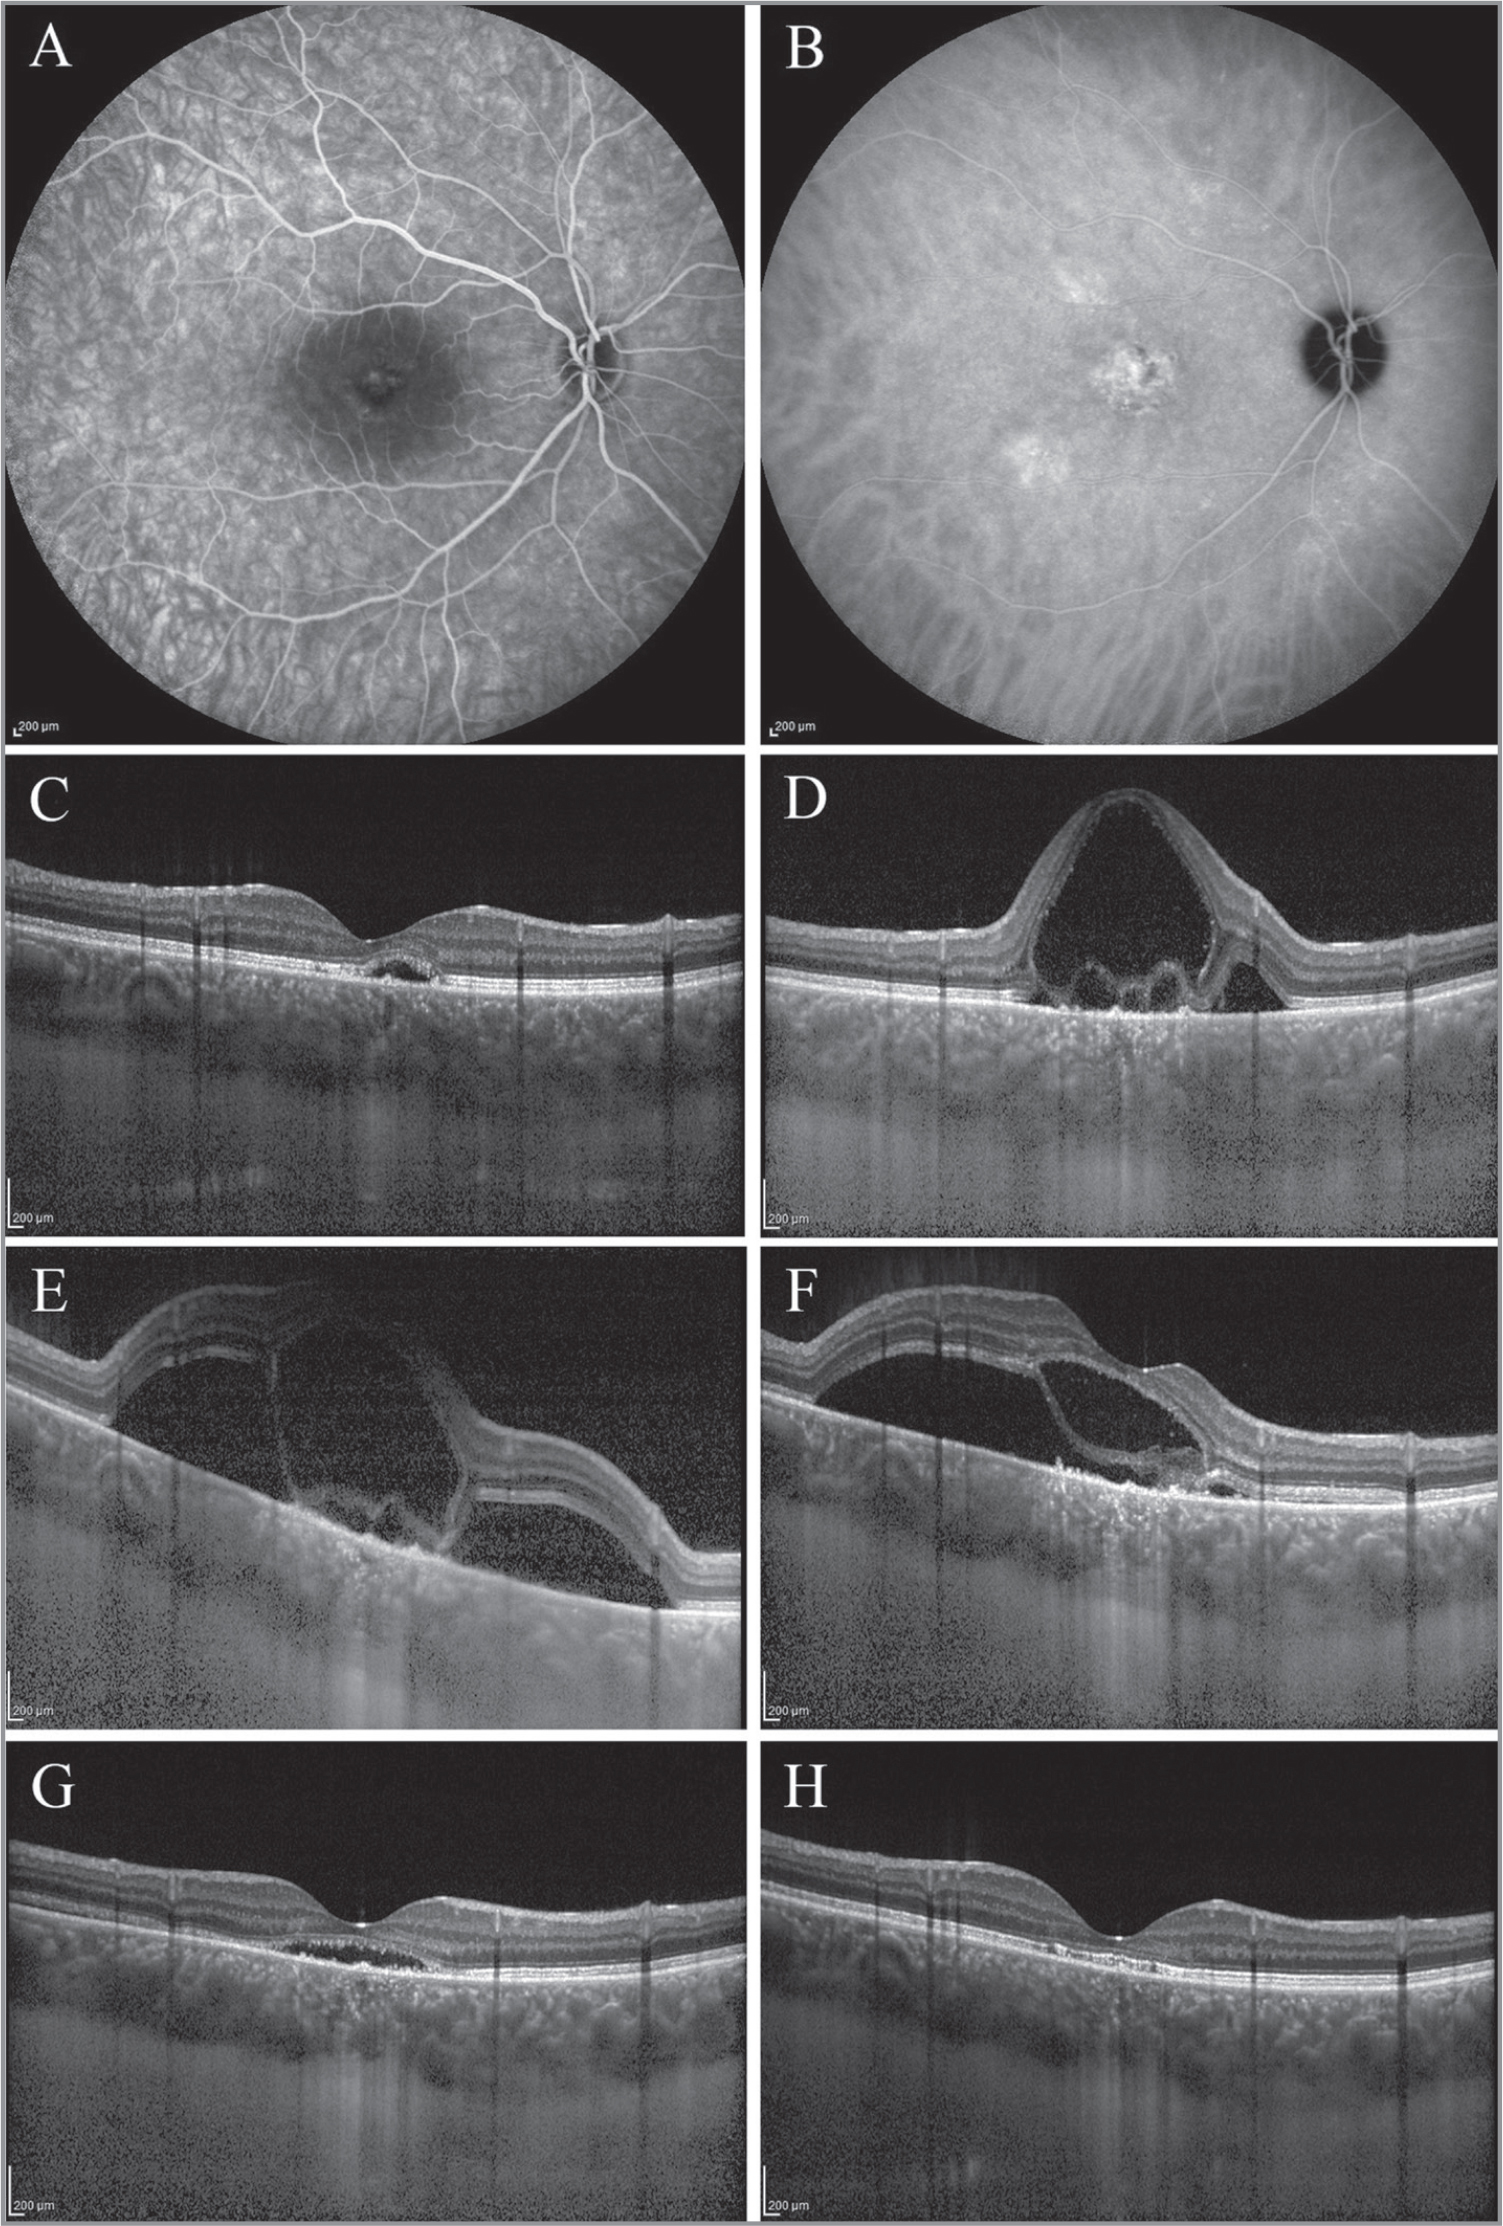 Right eye of a 38-year-old man with a 10-month history of central serous chorioretinopathy. Baseline fluorescein angiography shows leaking points in the foveal area, (A) and indocyanine green angiography shows choroidal hyperpermeability areas (B). Baseline optical coherence tomography image demonstrates subretinal fluid (SRF) and retinal pigment epithelium detachment. The pretreatment central foveal thickness (CFT) was 208 μm, and the subfoveal choroidal thickness (SCT) was 453 μm, with visual acuity (VA) of 20/32 (C). One day after half-time photodynamic therapy, a prompt increase in CFT from 208 μm to 976 μm and in SCT from 453 μm to 560 μm was noted (D). Three days after treatment, persistence of increased CFT (971 μm) and SCT (535 μm) is seen (third row, left) (E). CFT decreased from 971 μm to 515 μm and SCT from 535 μm to 450 μm 1 week after treatment, with VA of 20/50 (F). One month after treatment, CFT was 194 μm and SCT was 391 μm, with VA of 20/32 (G). Complete resolution of SRF and intraretinal fluid, persistence of decreased SCT (402 μm), and improved VA from 20/32 to 20/25 is seen 3 months after treatment (H).